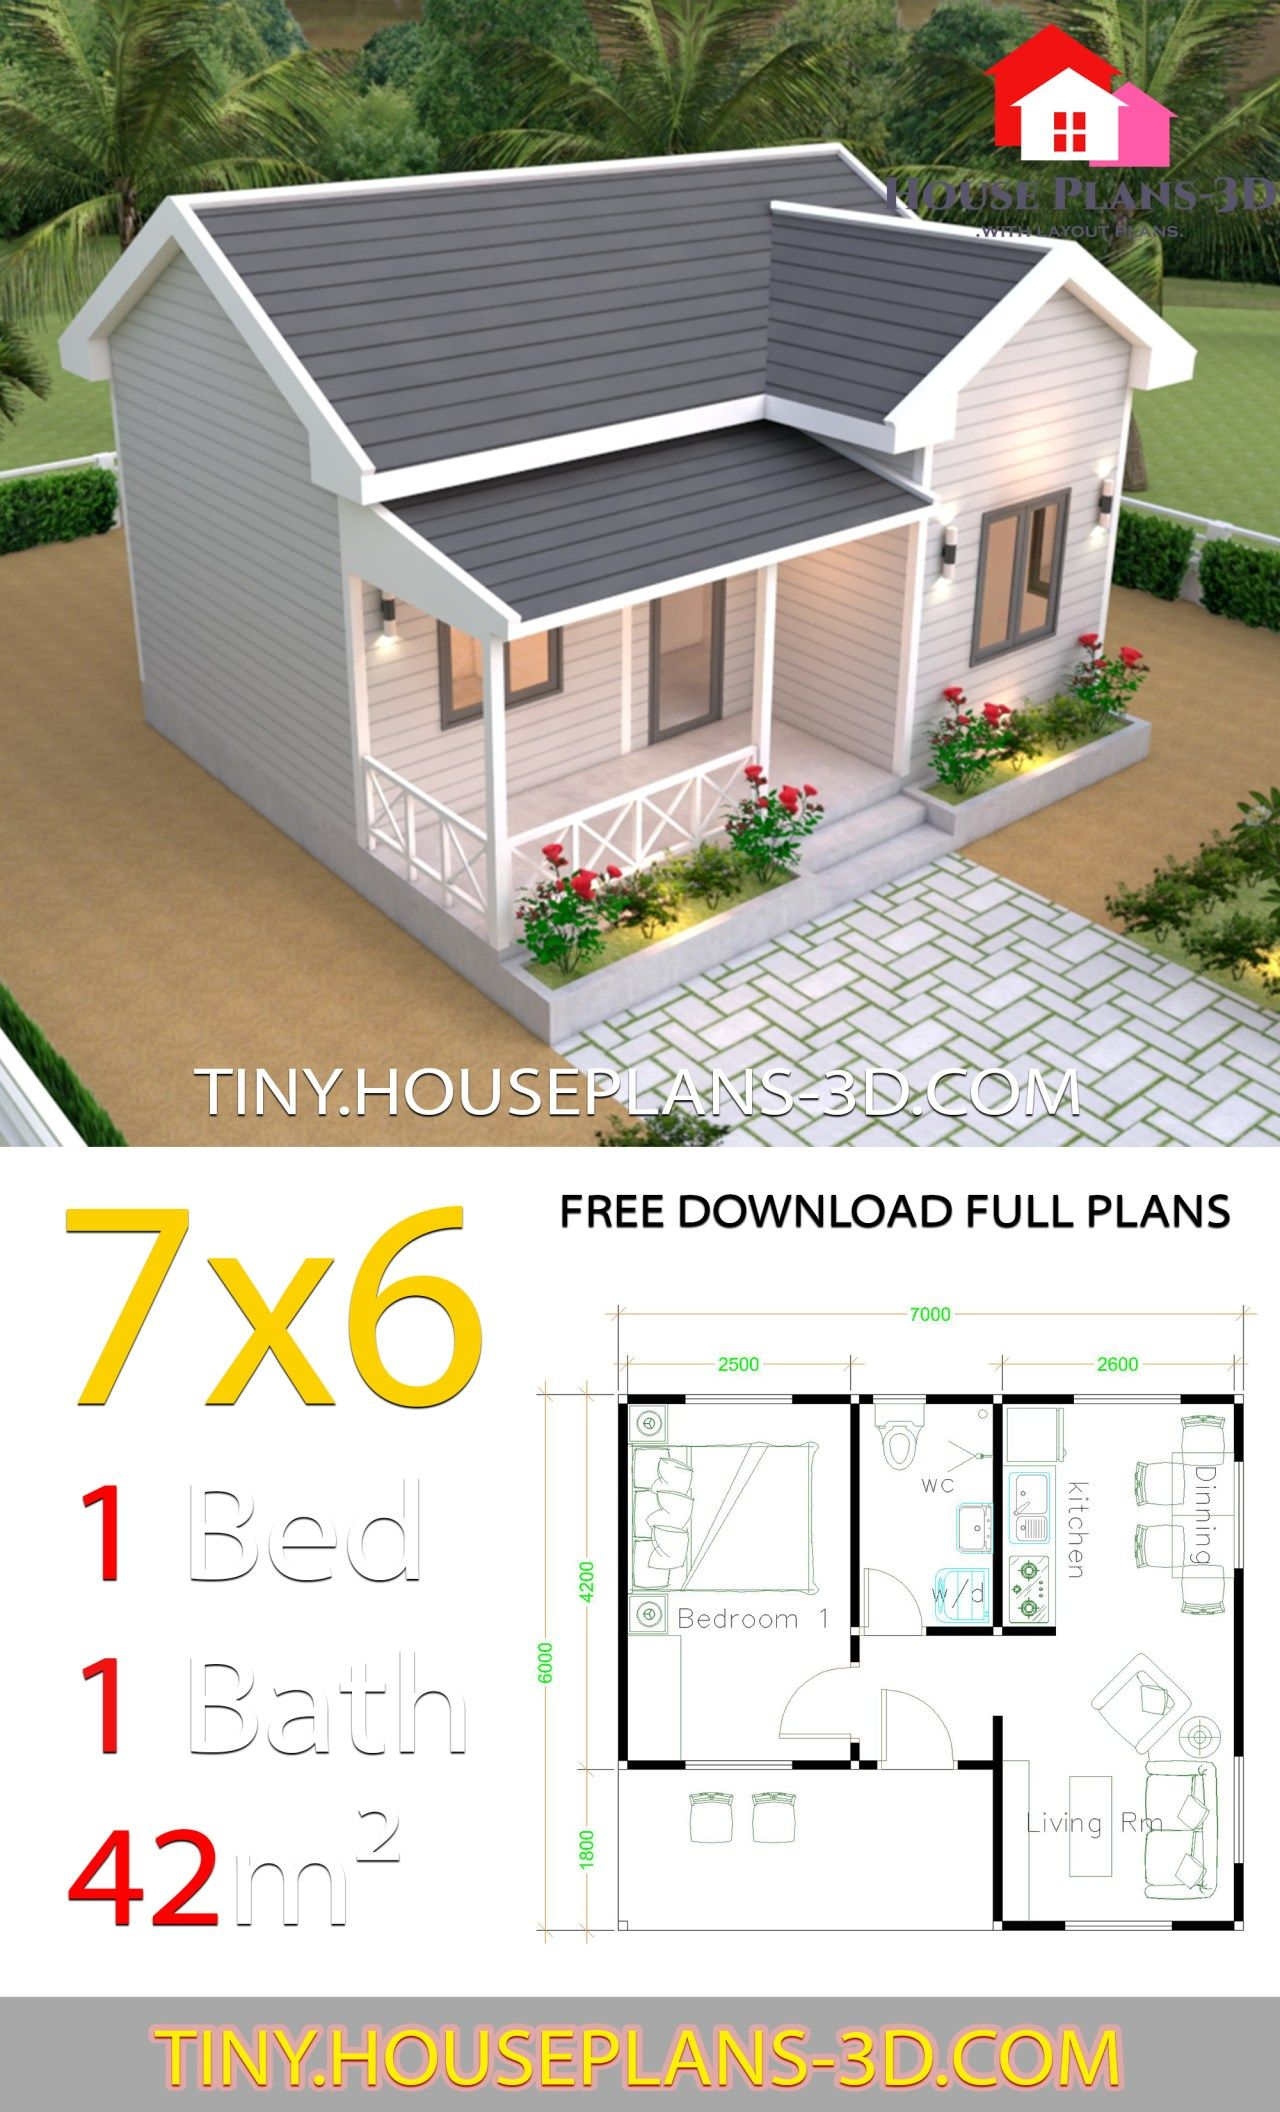 Tiny House Plans 7x6 With One Bedroom Cross Gable Roof Tiny House Plans Small House Layout Tiny House Plans Tiny House Floor Plans